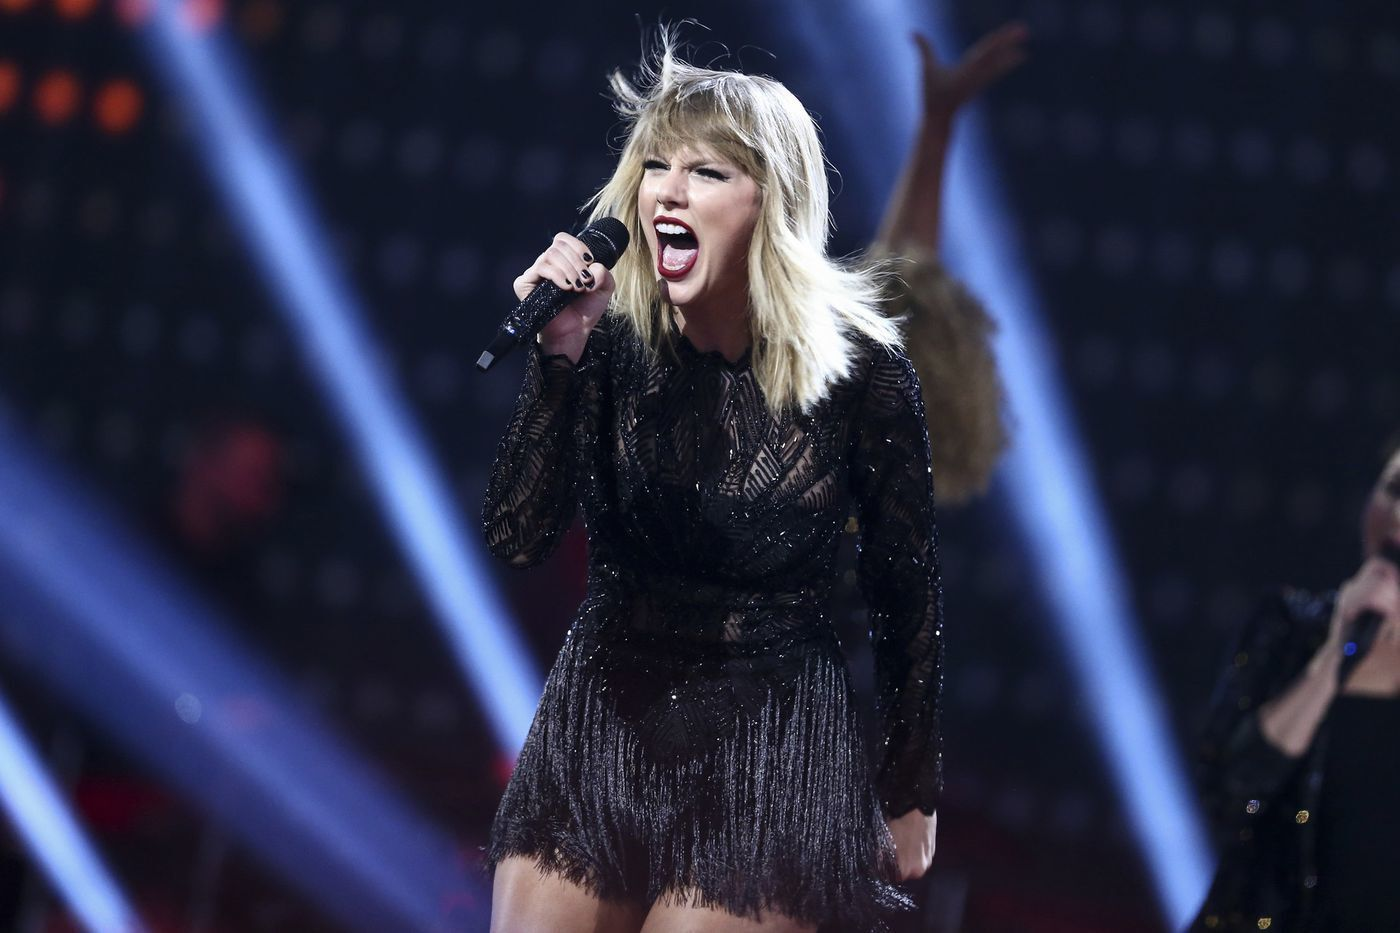 Taylor Swift drags Scooter Braun, says she will 'definitely' rerecord her old songs